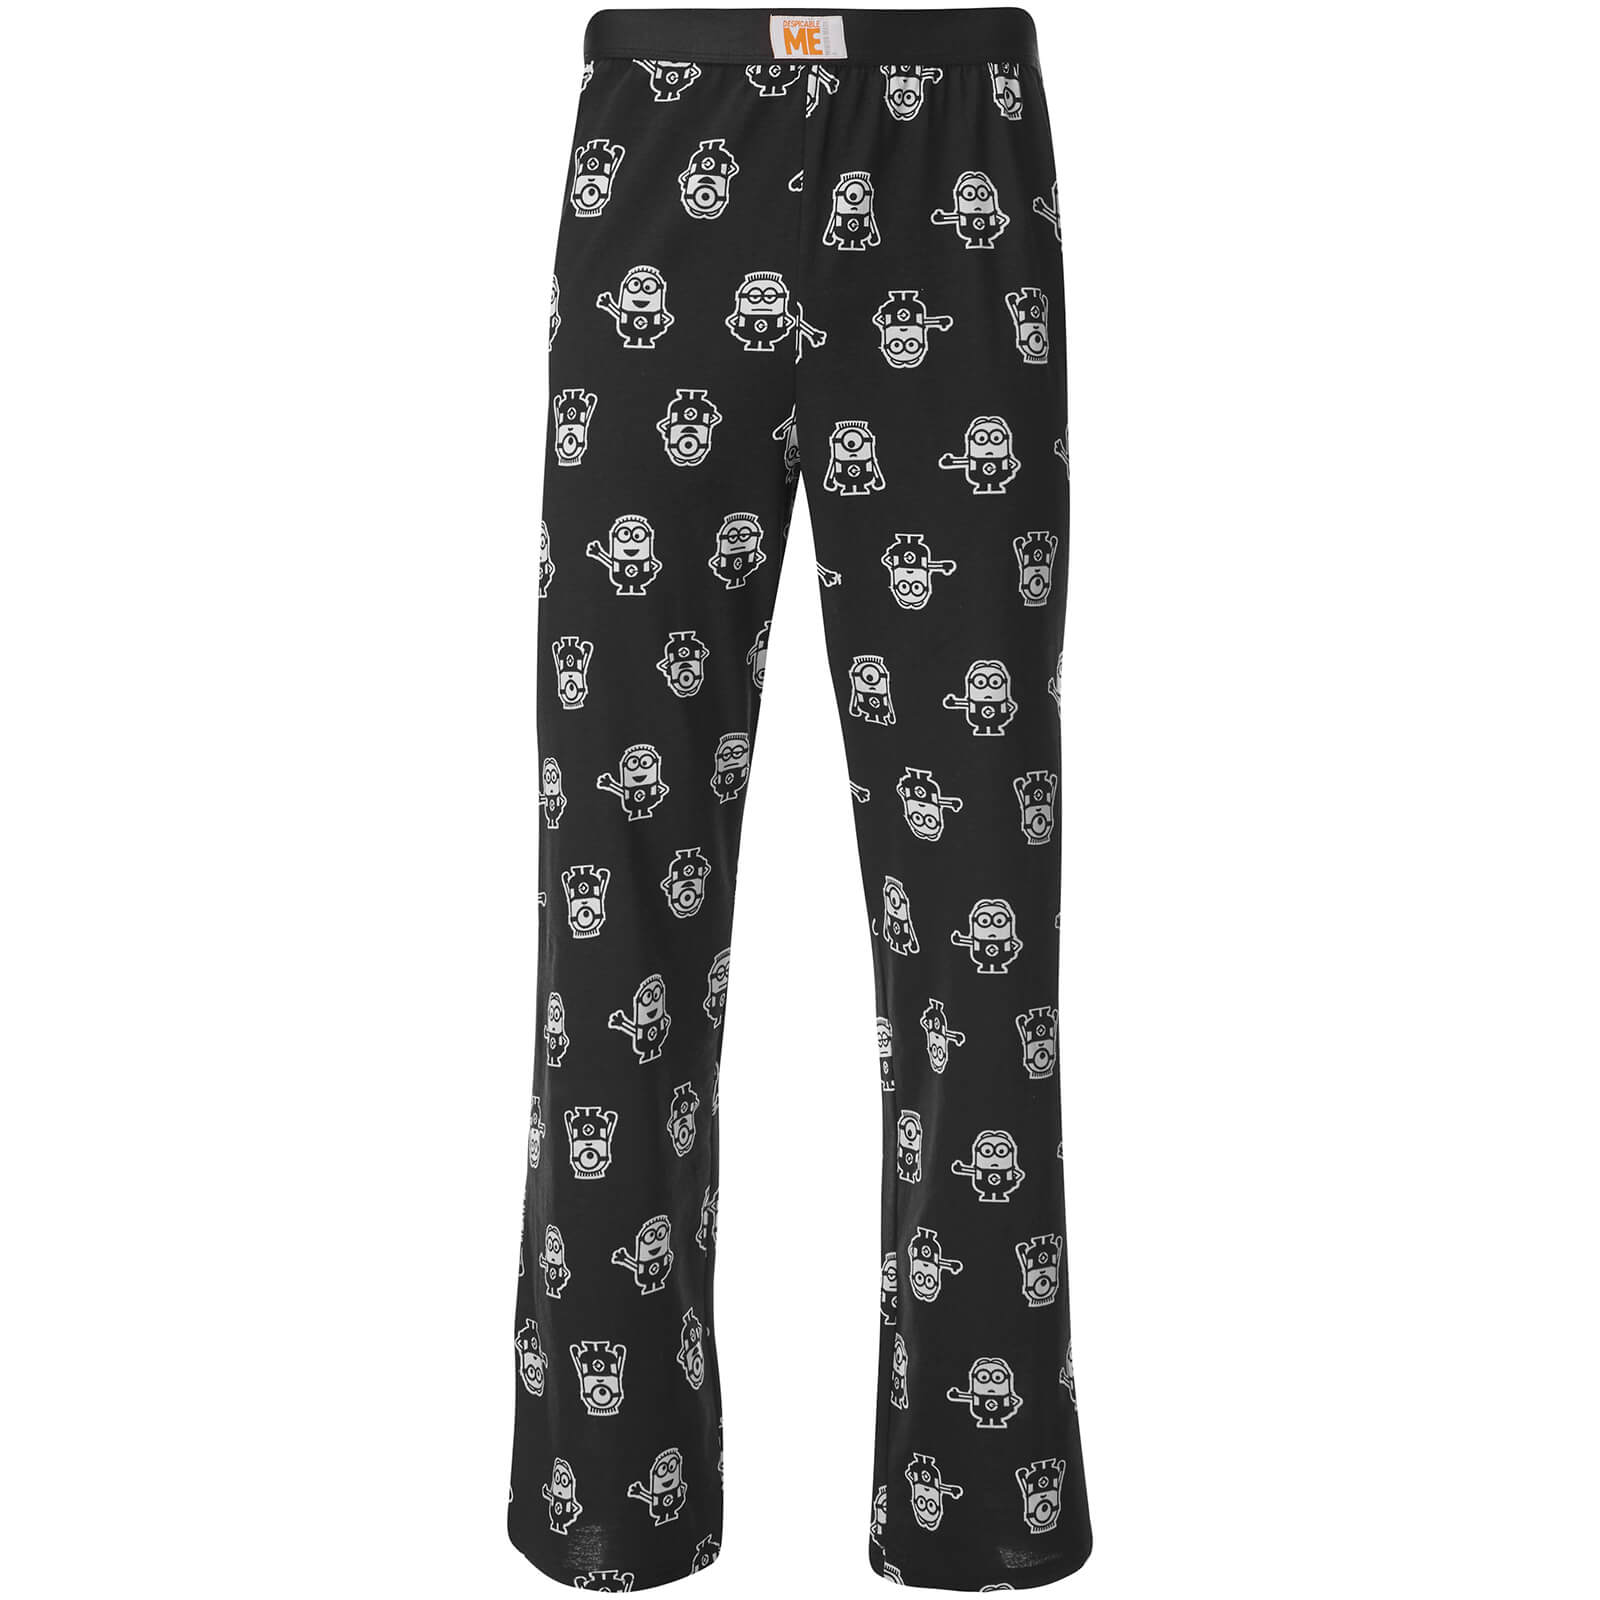 pantalon homme de pyjama les minions noir merchandise. Black Bedroom Furniture Sets. Home Design Ideas